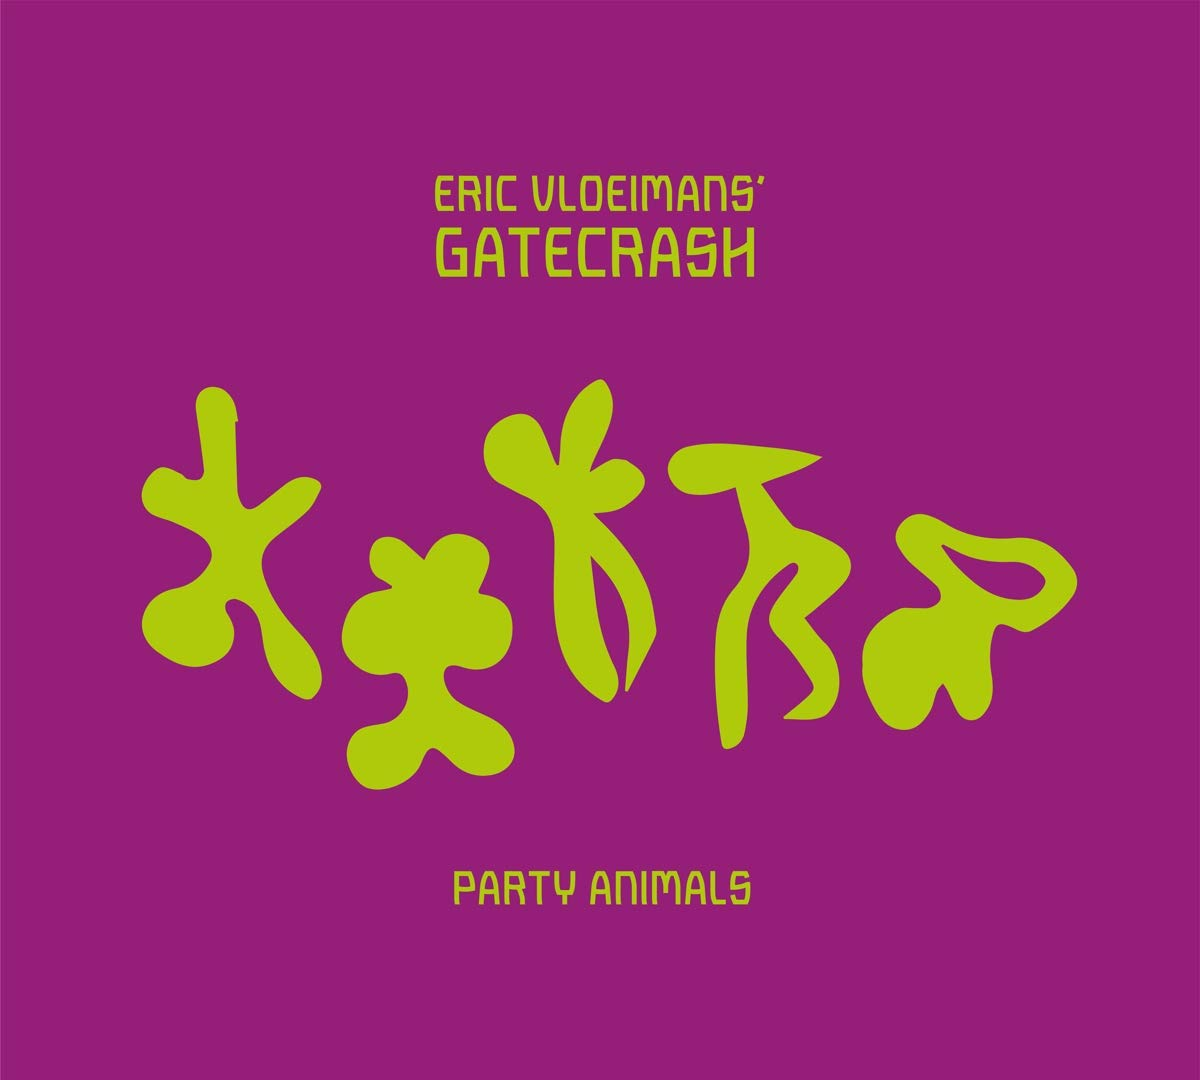 ERIC VLOEIMANS - Eric Vloeimans Gatecrash : Party Animals cover